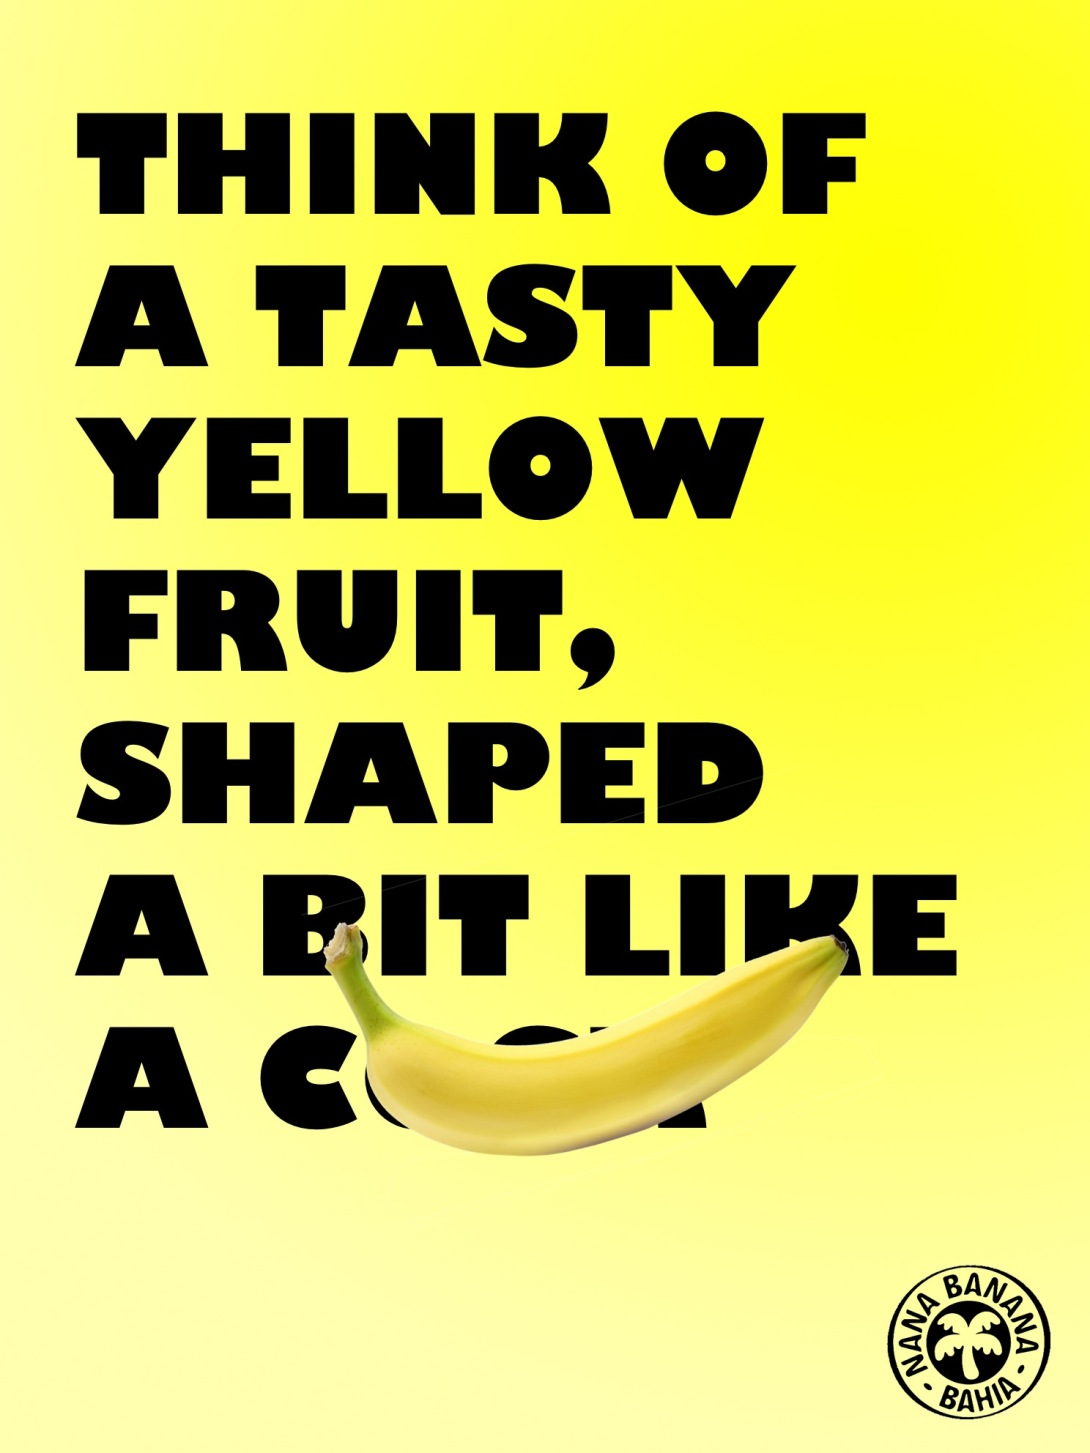 punchy advertising concept for bananas